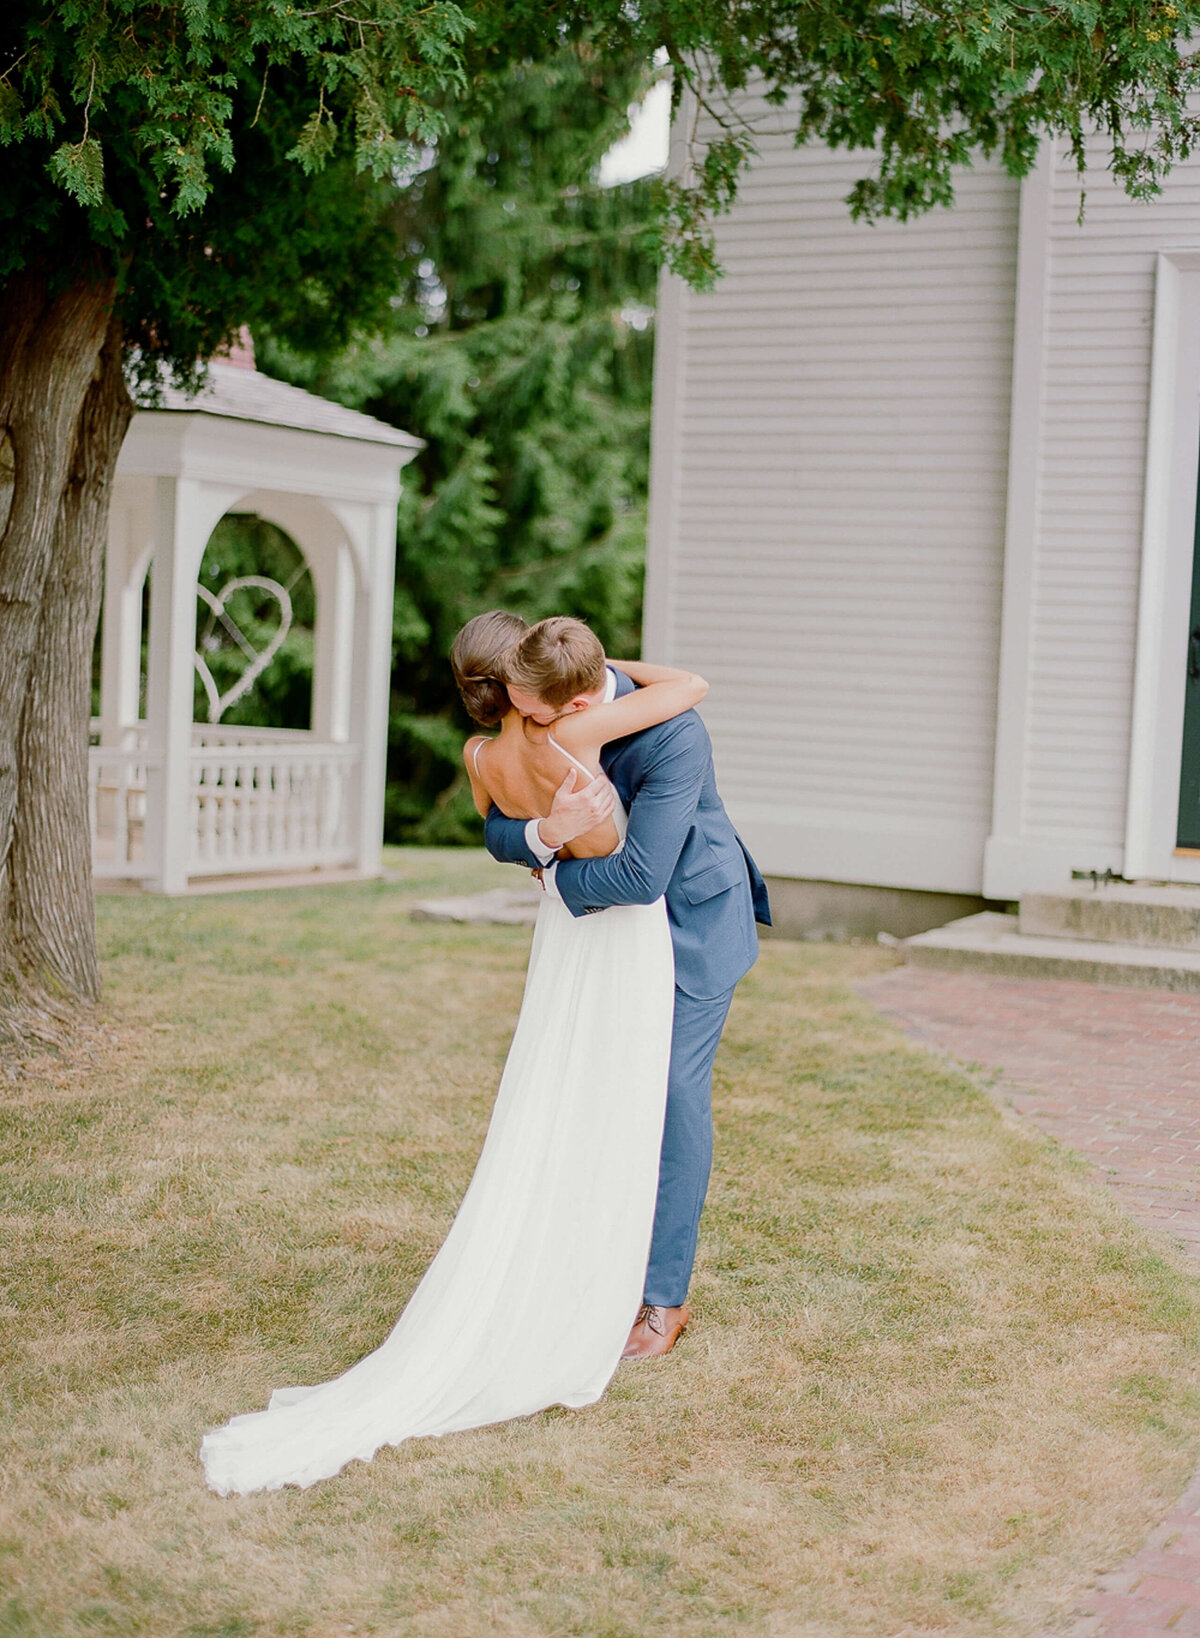 coastal-new-hampshire-wedding-clay-austin-photography-11